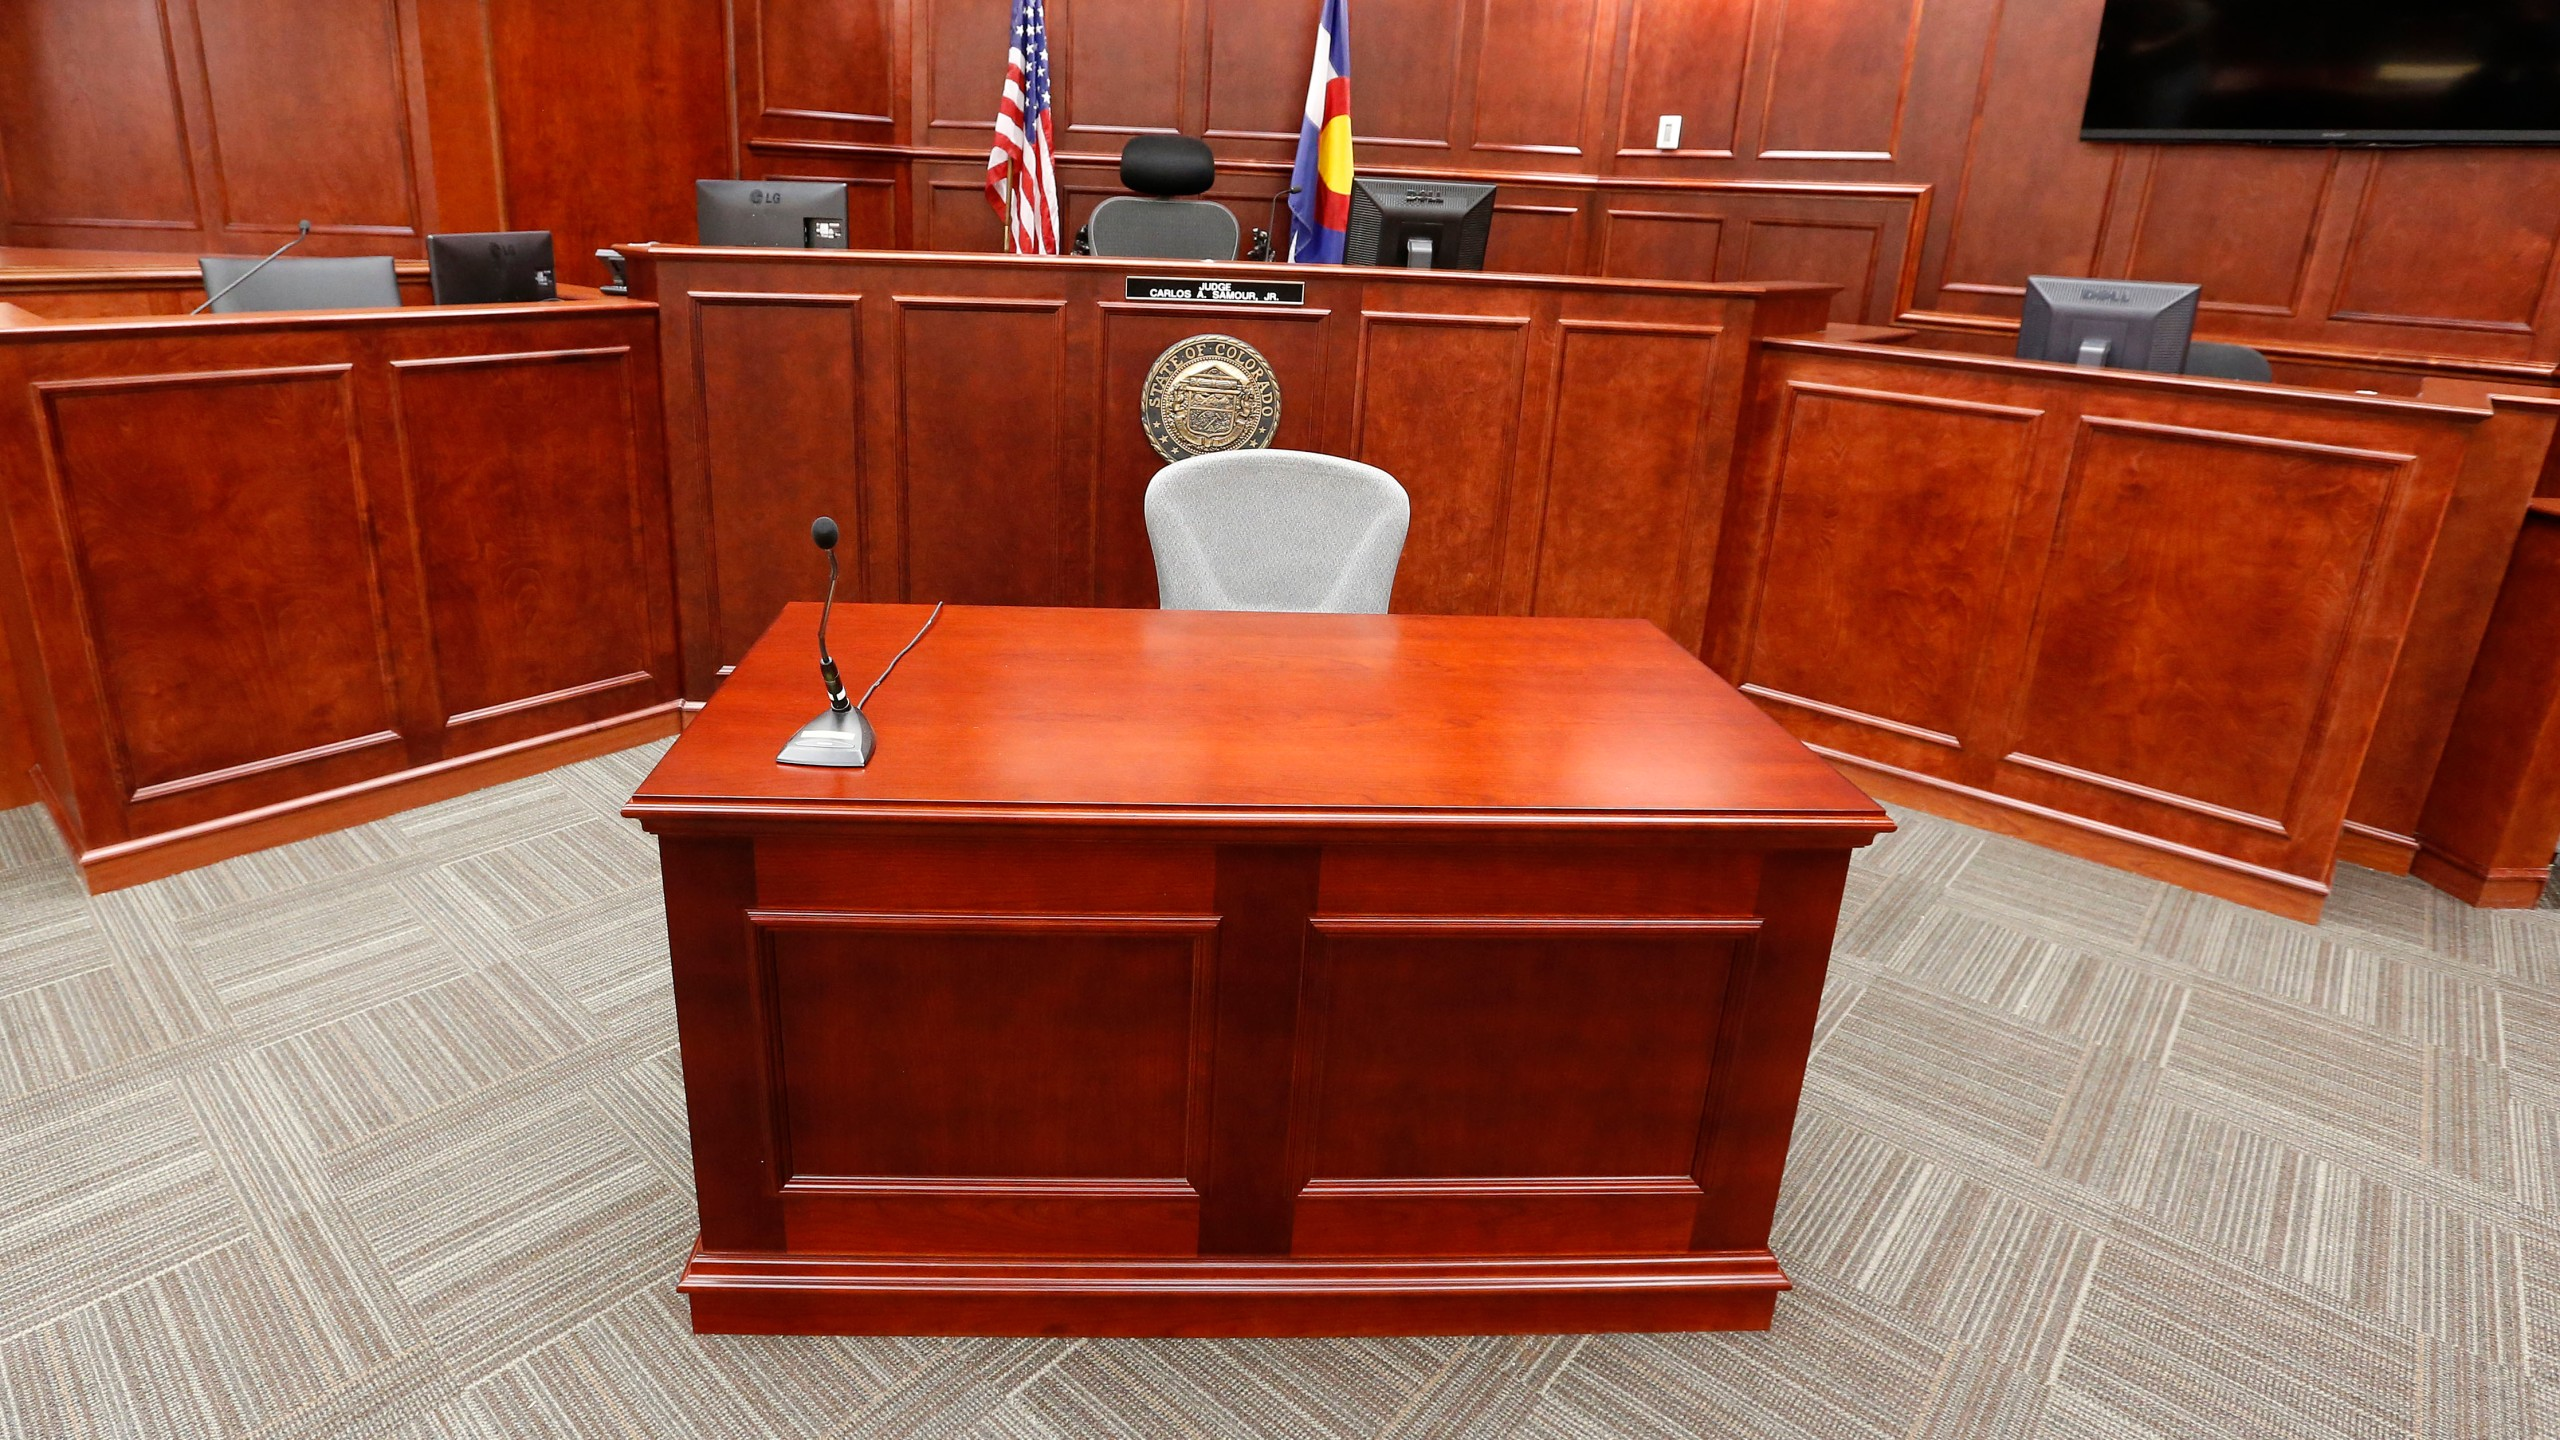 A view inside Courtroom 201, where jury selection in the trial of Aurora movie theater shootings defendant James Holmes is to begin on Jan. 20, 2015. (AP Photo/Brennan Linsley, pool)